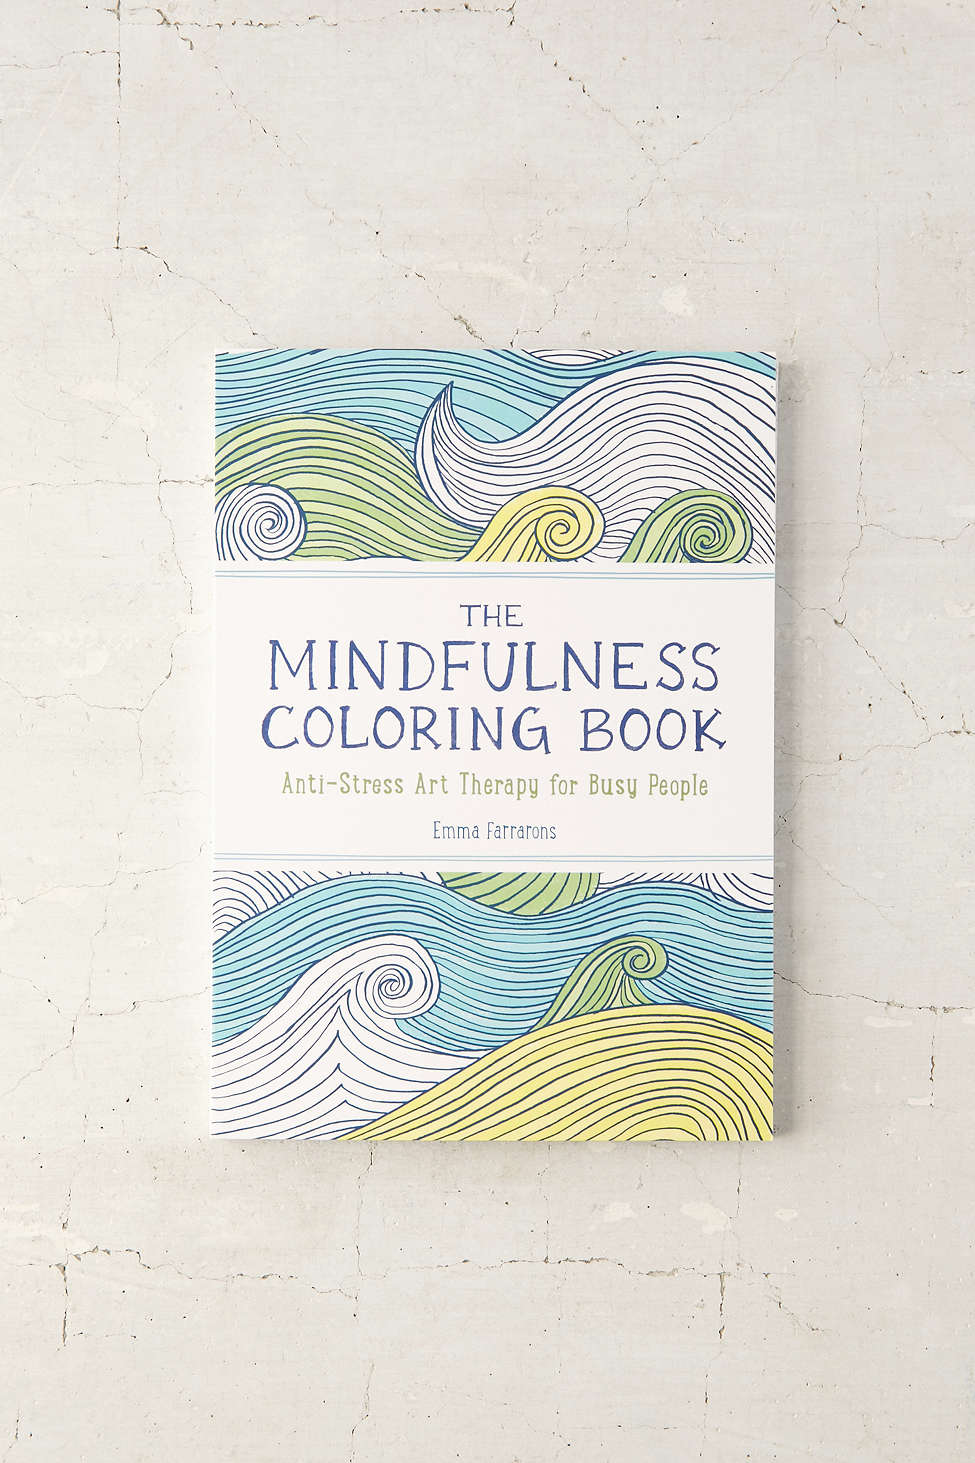 15 Little Things Every Person With Anxiety Needs - Coloring Book from Urban Outfitters